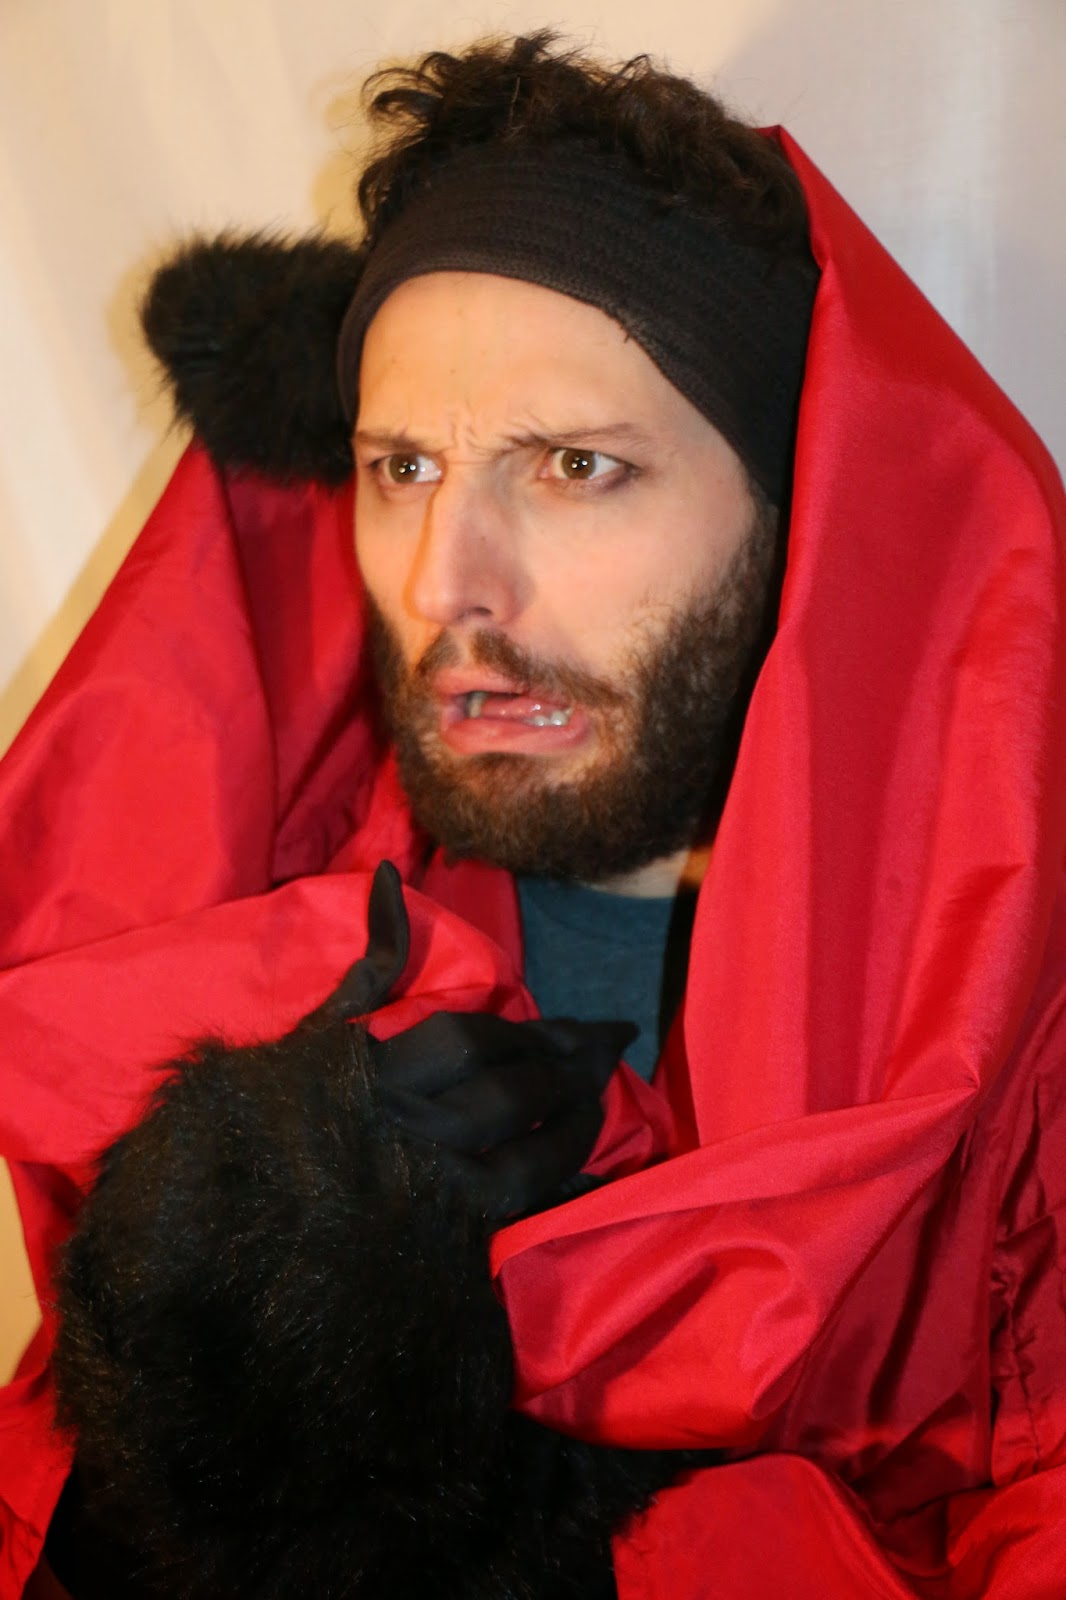 THE CHARMING BIG BAD WOLF-1E-RED RIDING HOOD 2015--GLEAMS THEATER--IRA SOKOLOVA- PHOTO: SHAHRZAD GHAFFARI WESTMOUNT, QUEBEC, CANADA